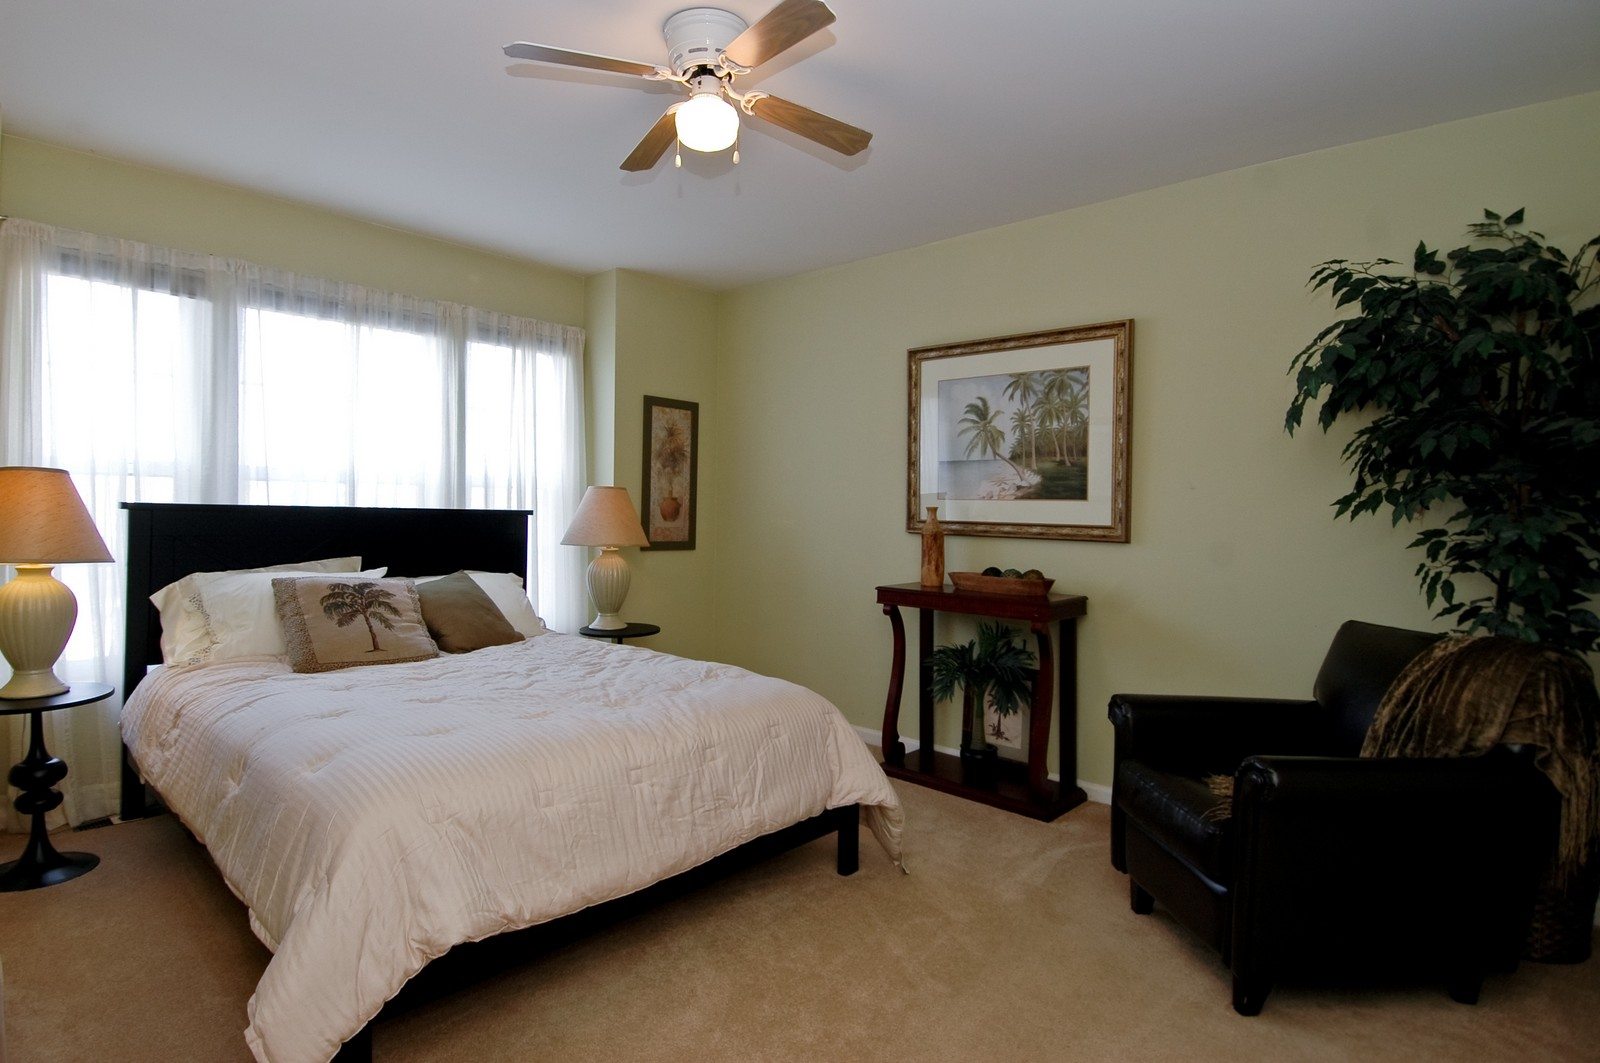 Real Estate Photography - 1581 Summerhill Ln, Cary, IL, 60013 - Bedroom